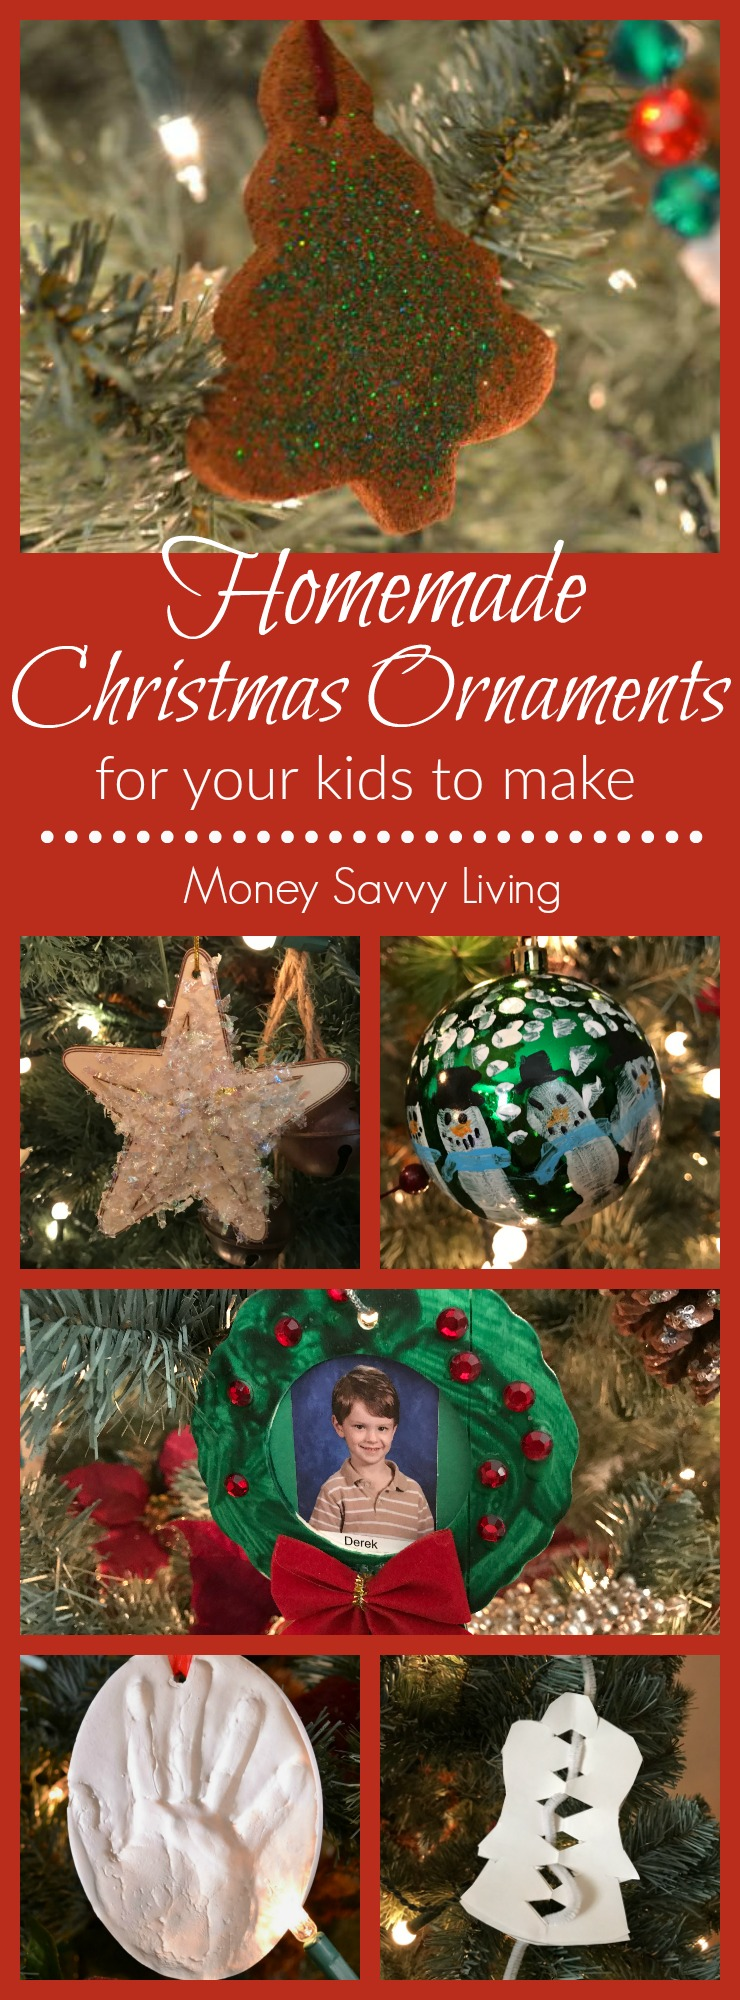 Christmas Ornaments that Your Kids Can Make that You Will Actually Want on Your Tree - Money ...